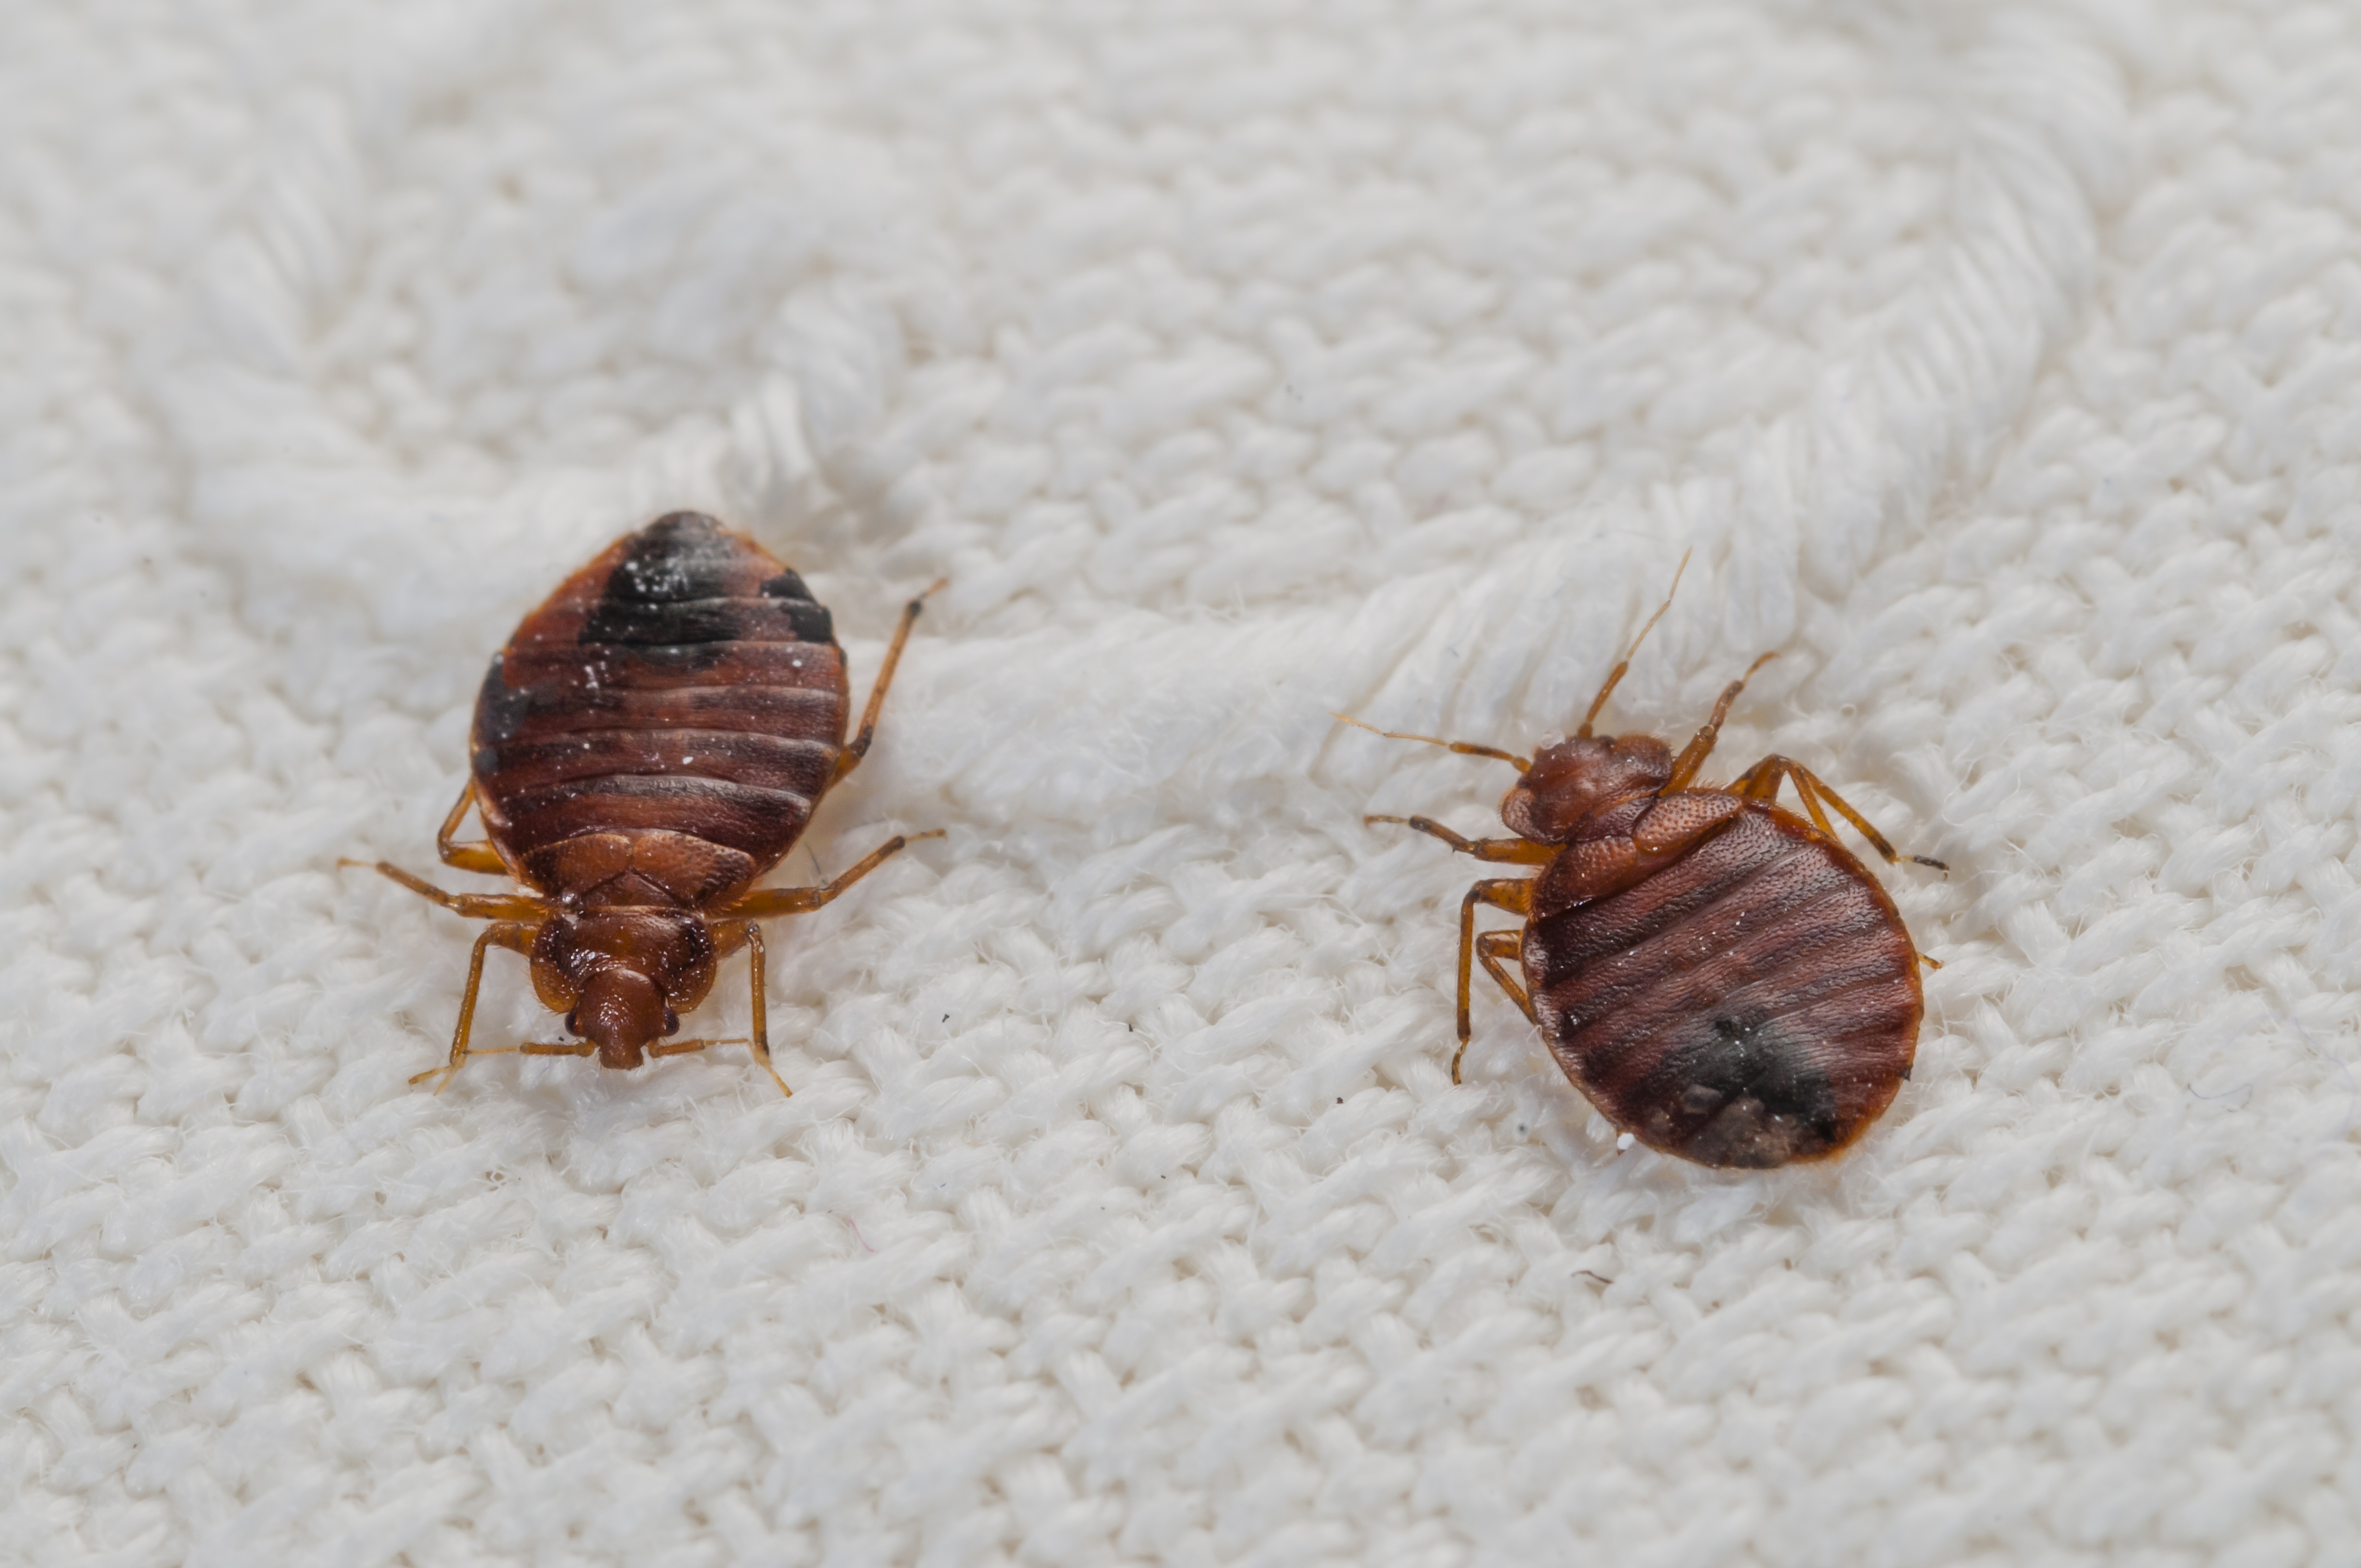 How To Get Rid Of Bed Bugs After Travel